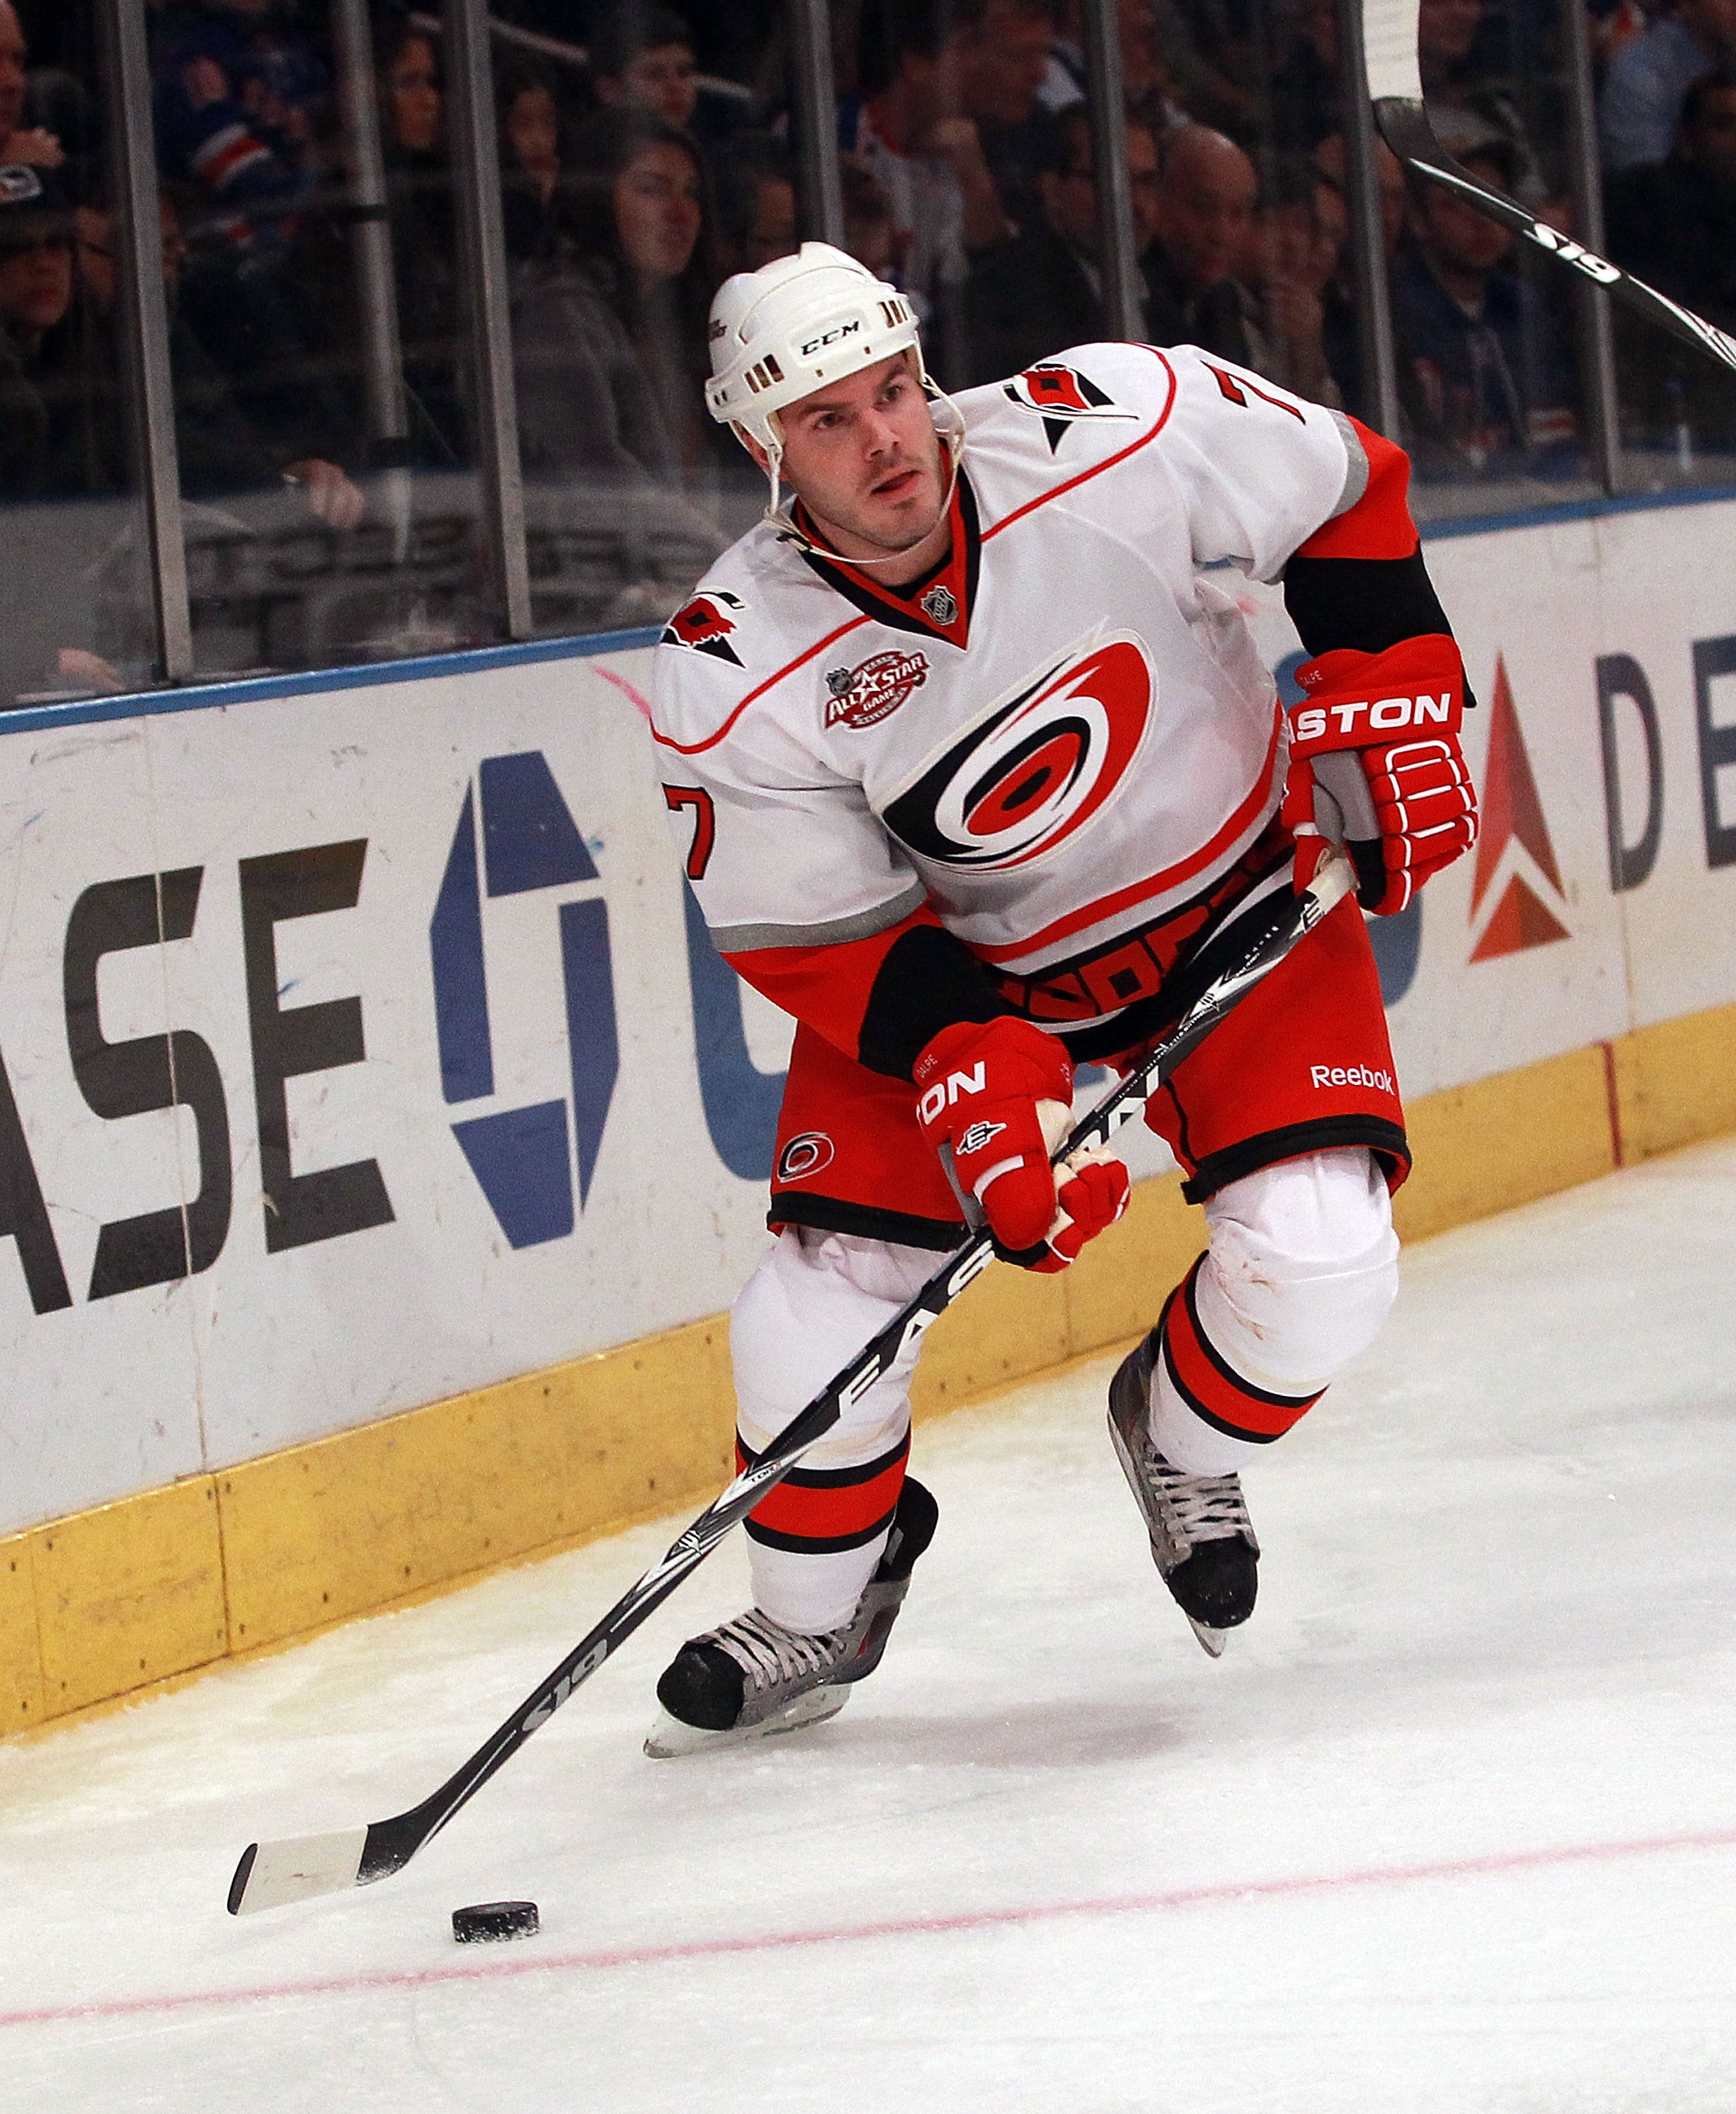 NEW YORK, NY - JANUARY 05: Ian White #7 of the Carolina Hurricanes skates against the New York Rangers at Madison Square Garden on January 5, 2011 in New York City. The Rangers defeated the Hurricanes 2-1 in overtime.  (Photo by Bruce Bennett/Getty Images